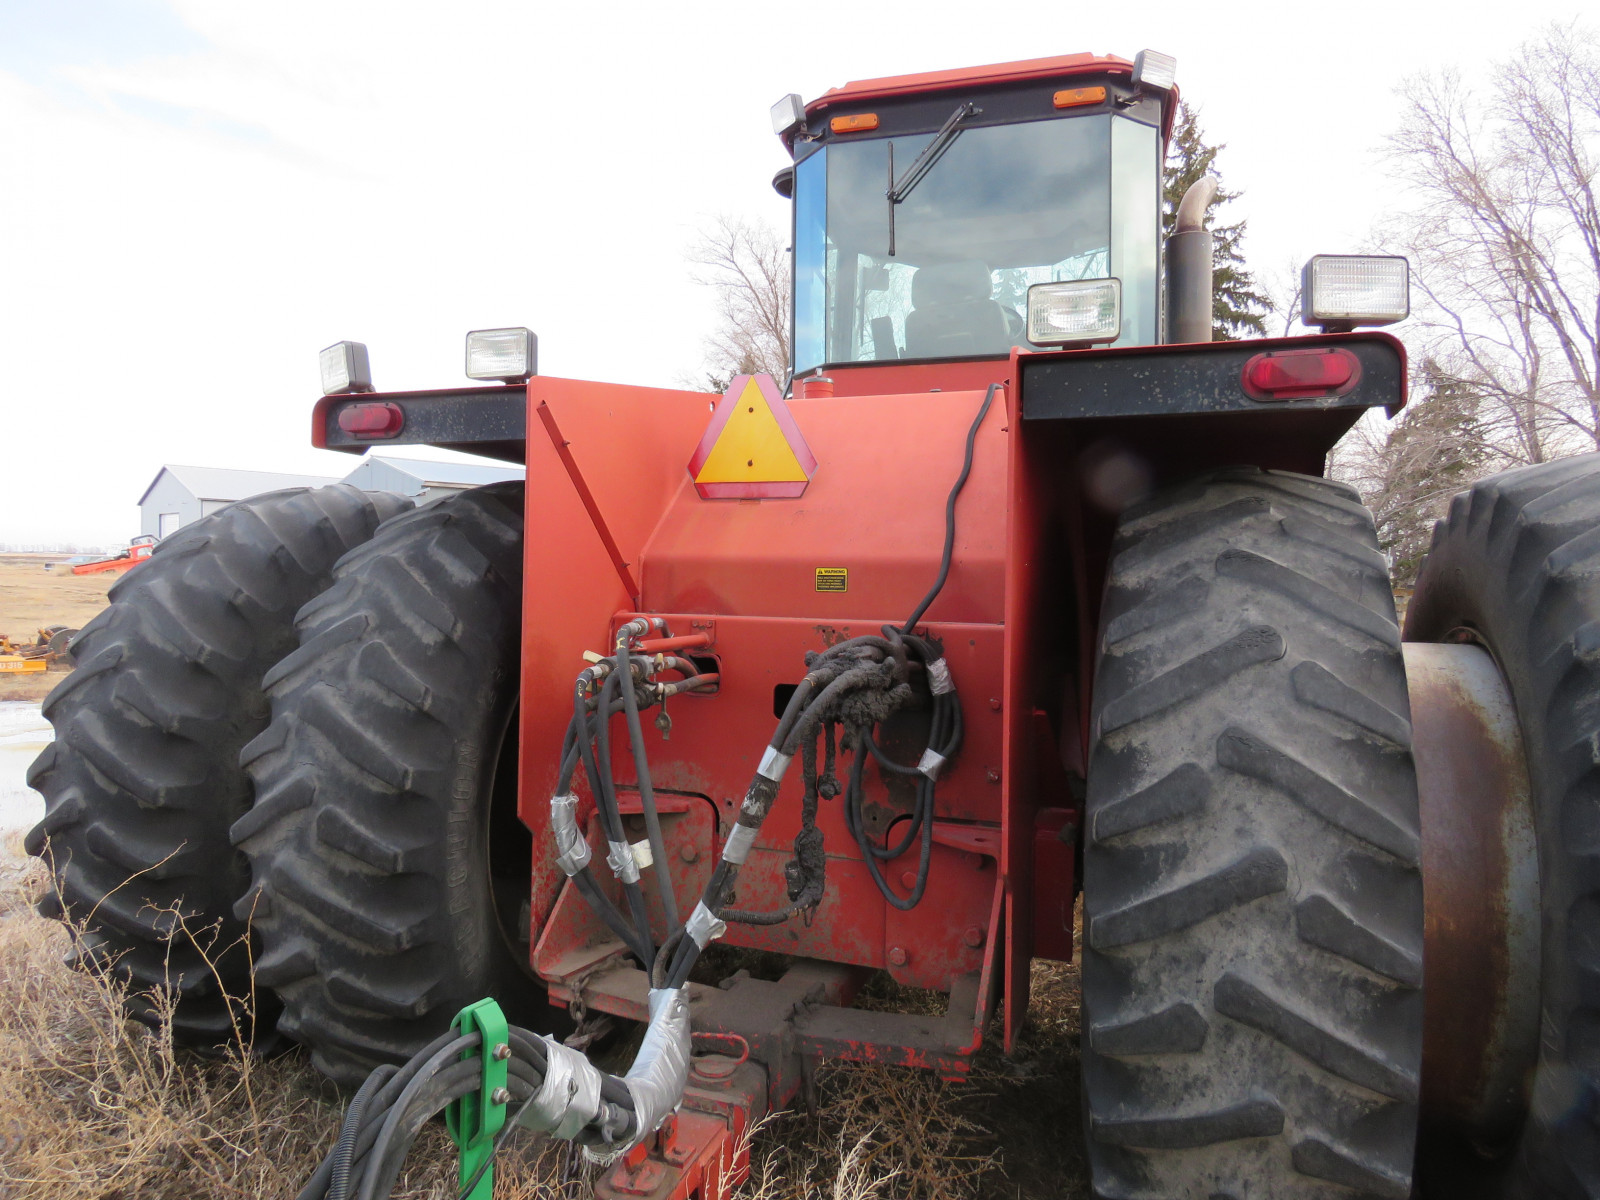 Case-IH 9170 4WD Tractor 9170 JCB0002613 - Image 4